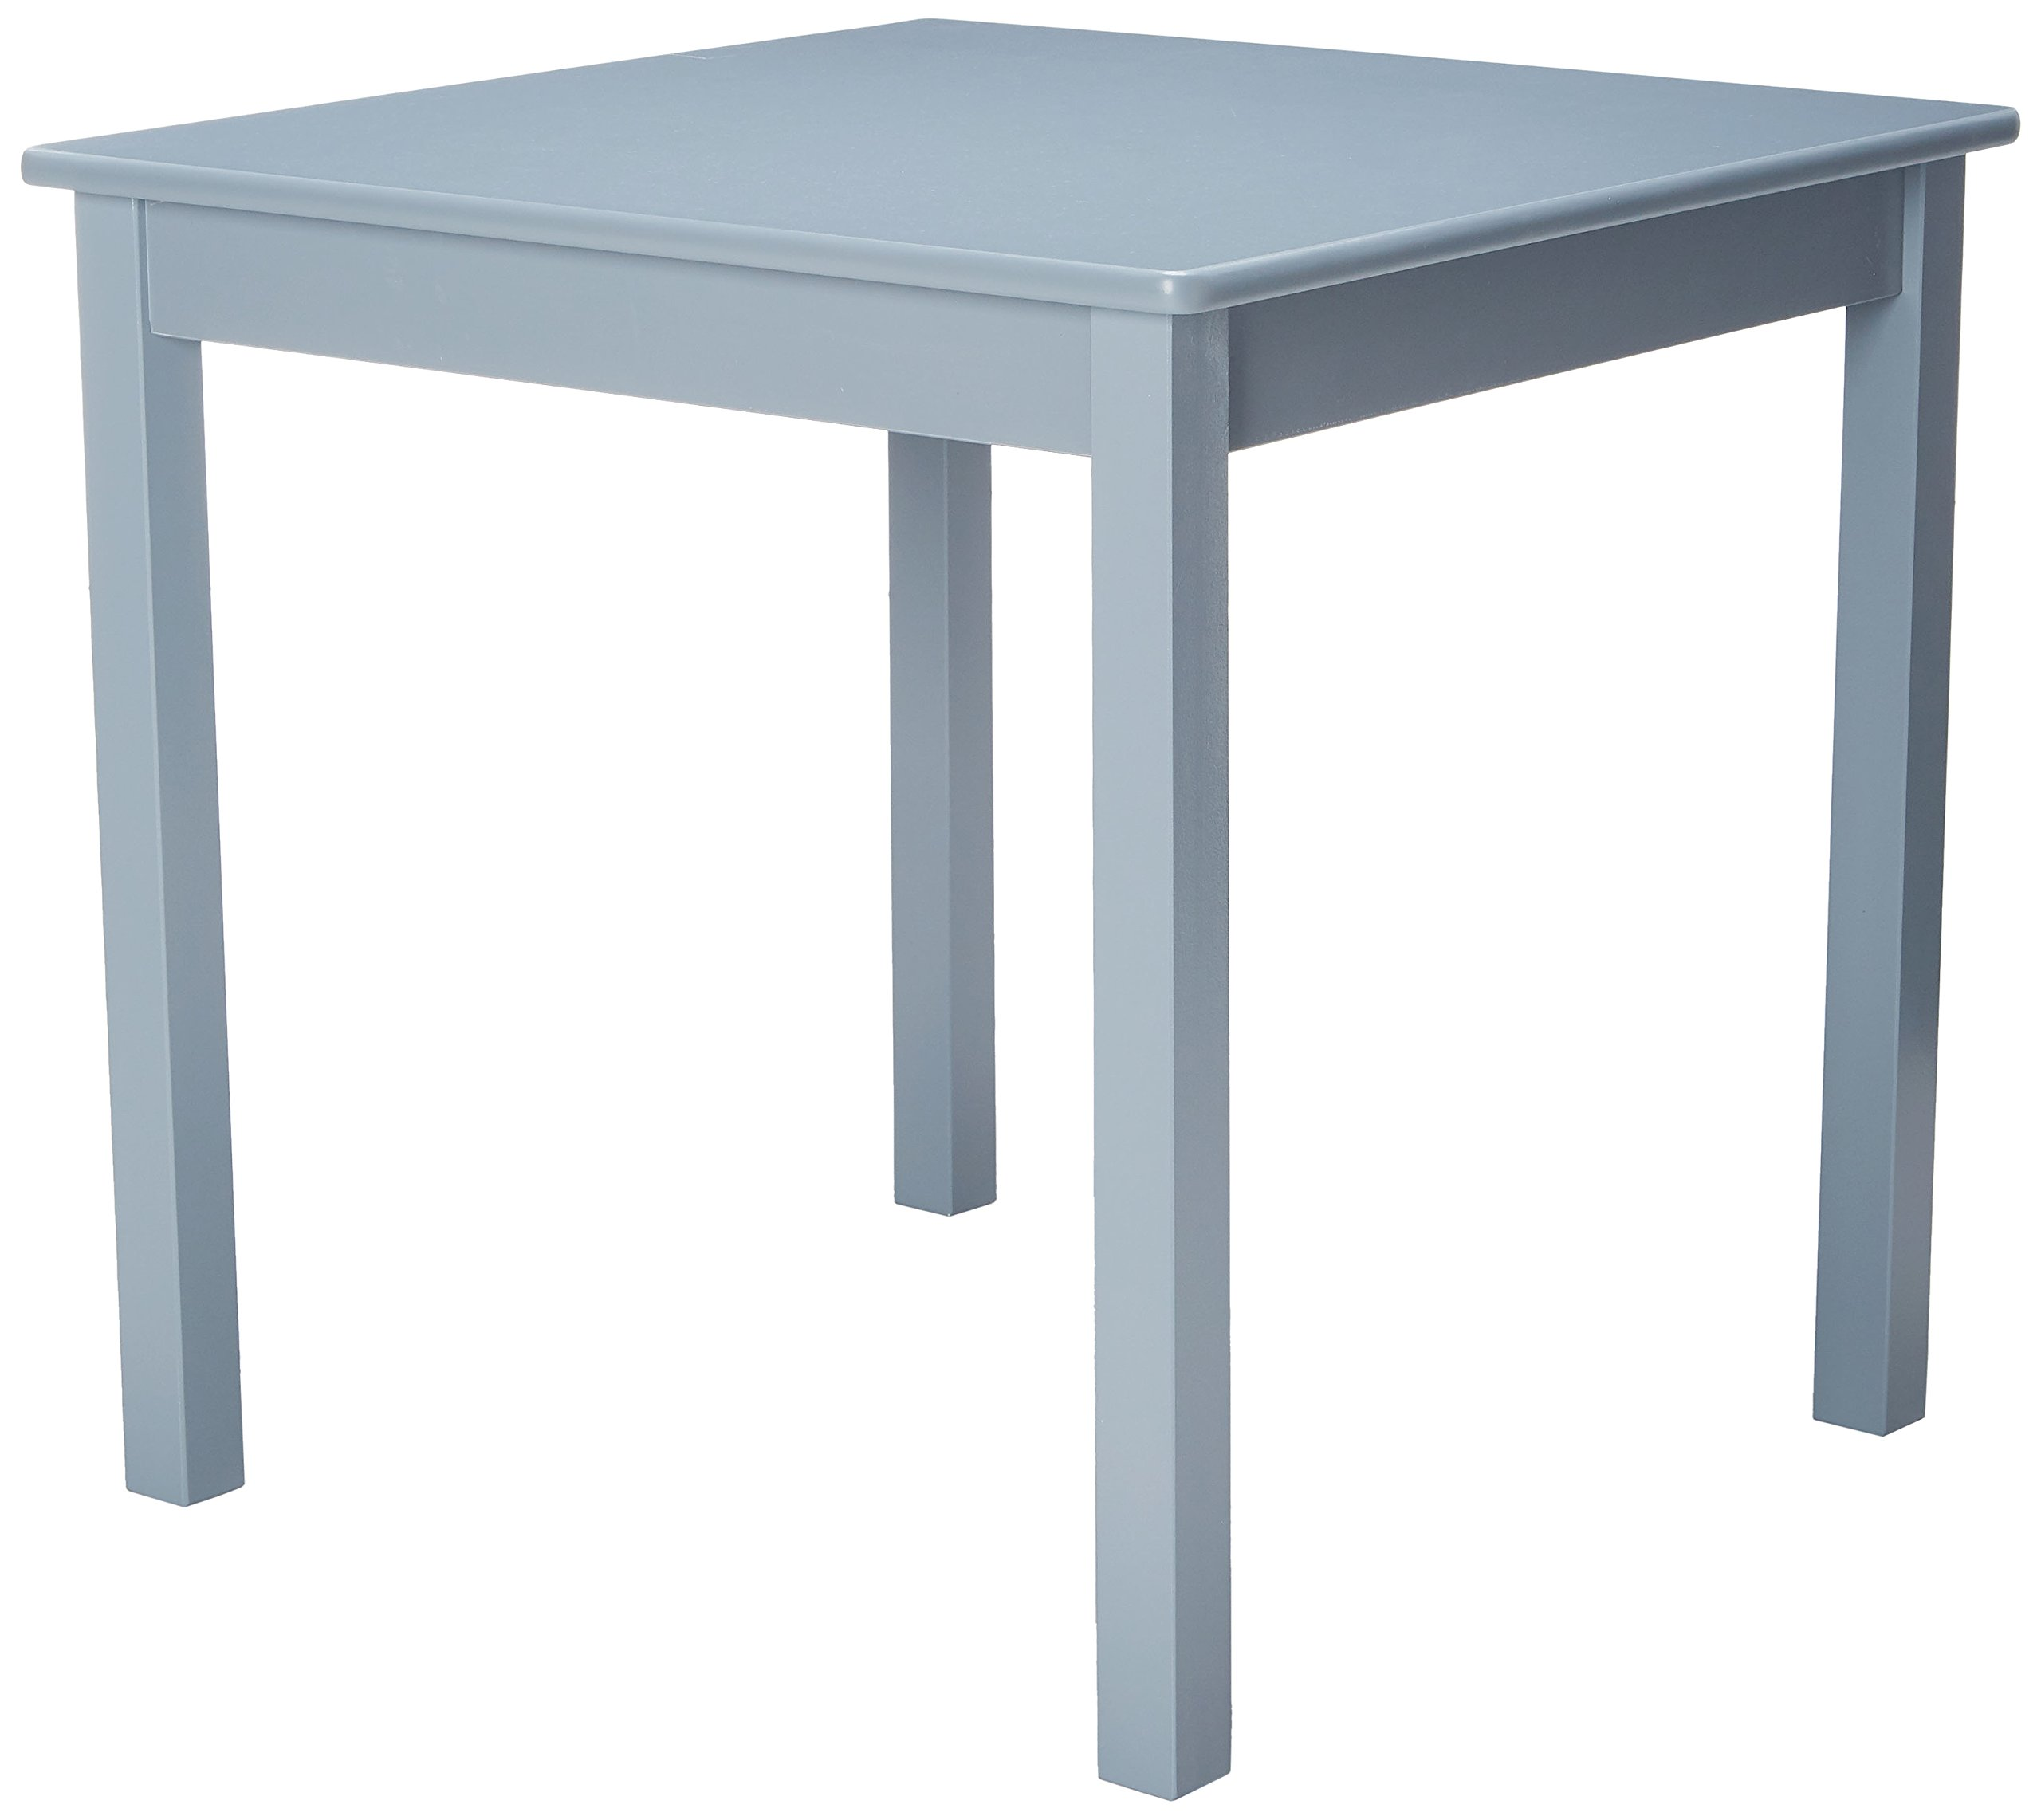 Lipper International 520G Child's Table for Play or Activity, 23.75'' x 23.75'' Square, 21.66'' Tall, Grey